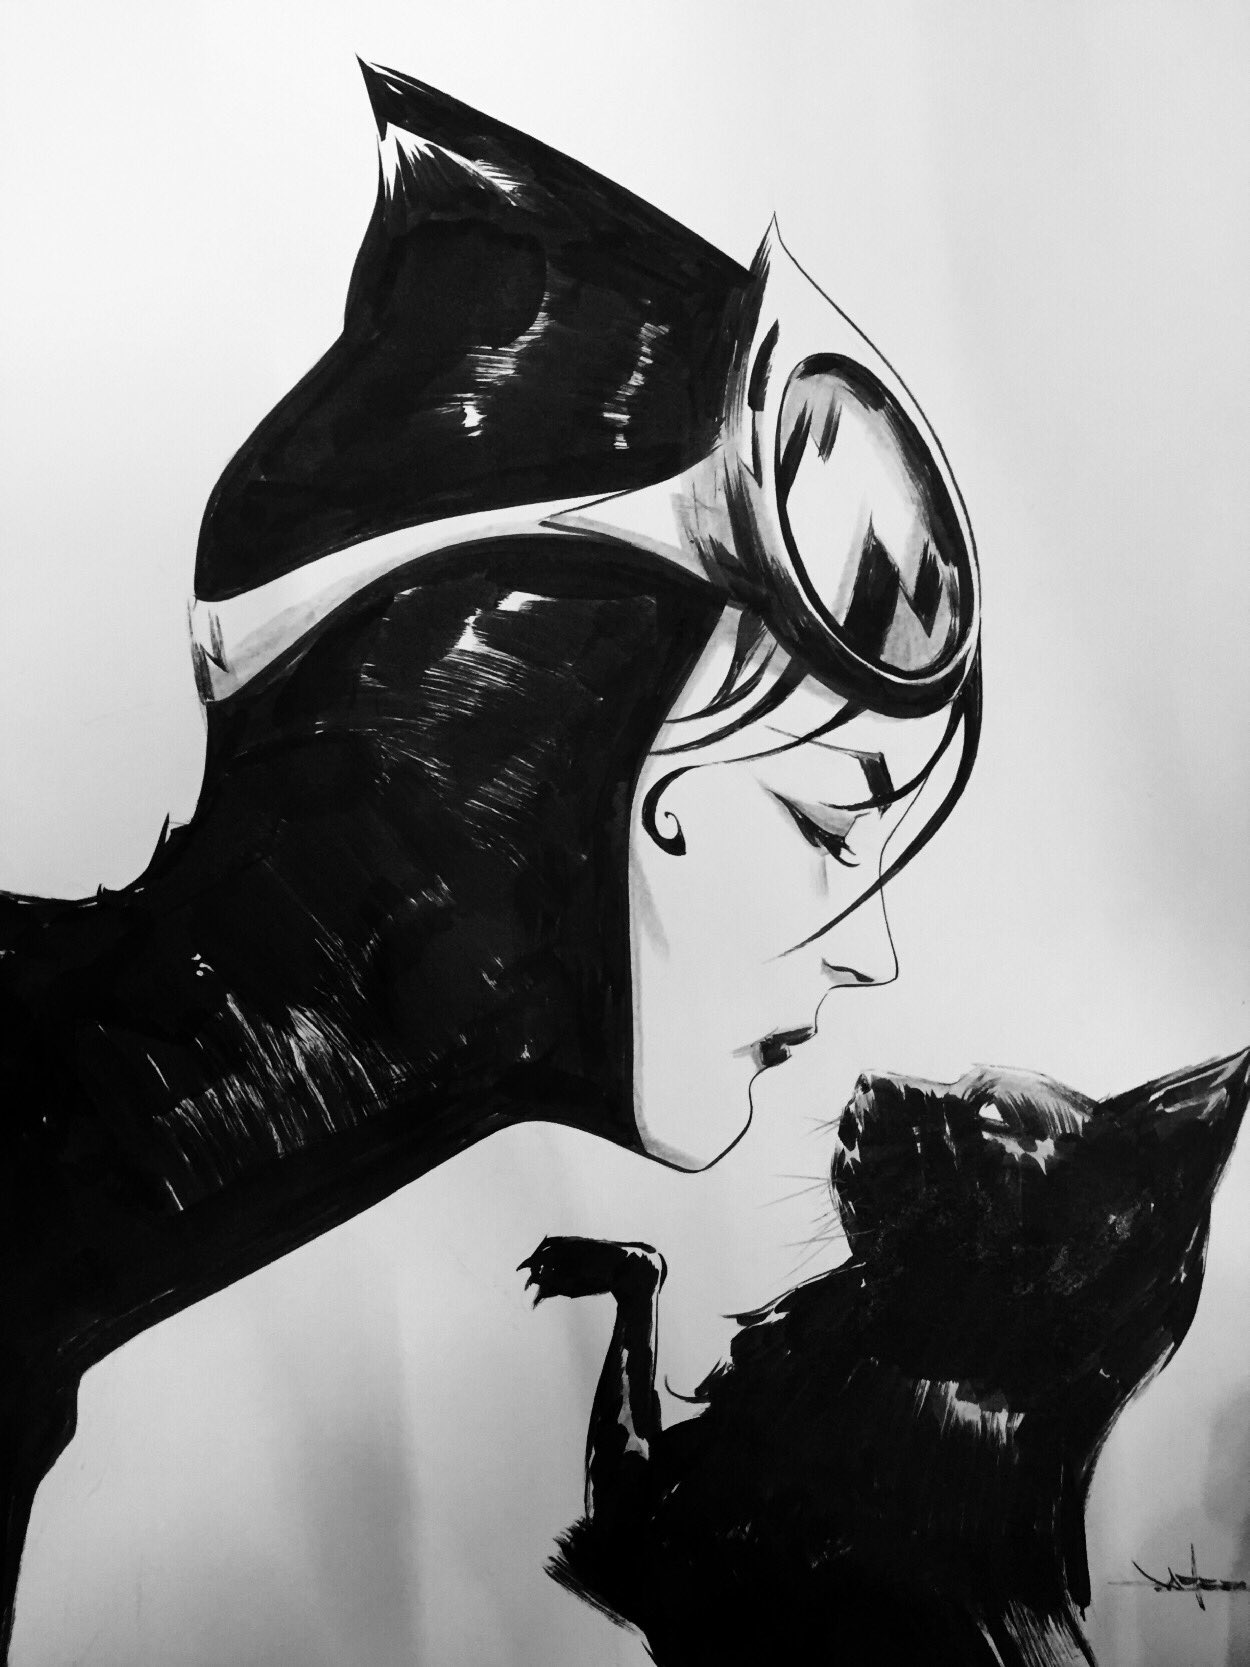 Catwoman by Jae Lee https://t.co/CW8cynrX0R